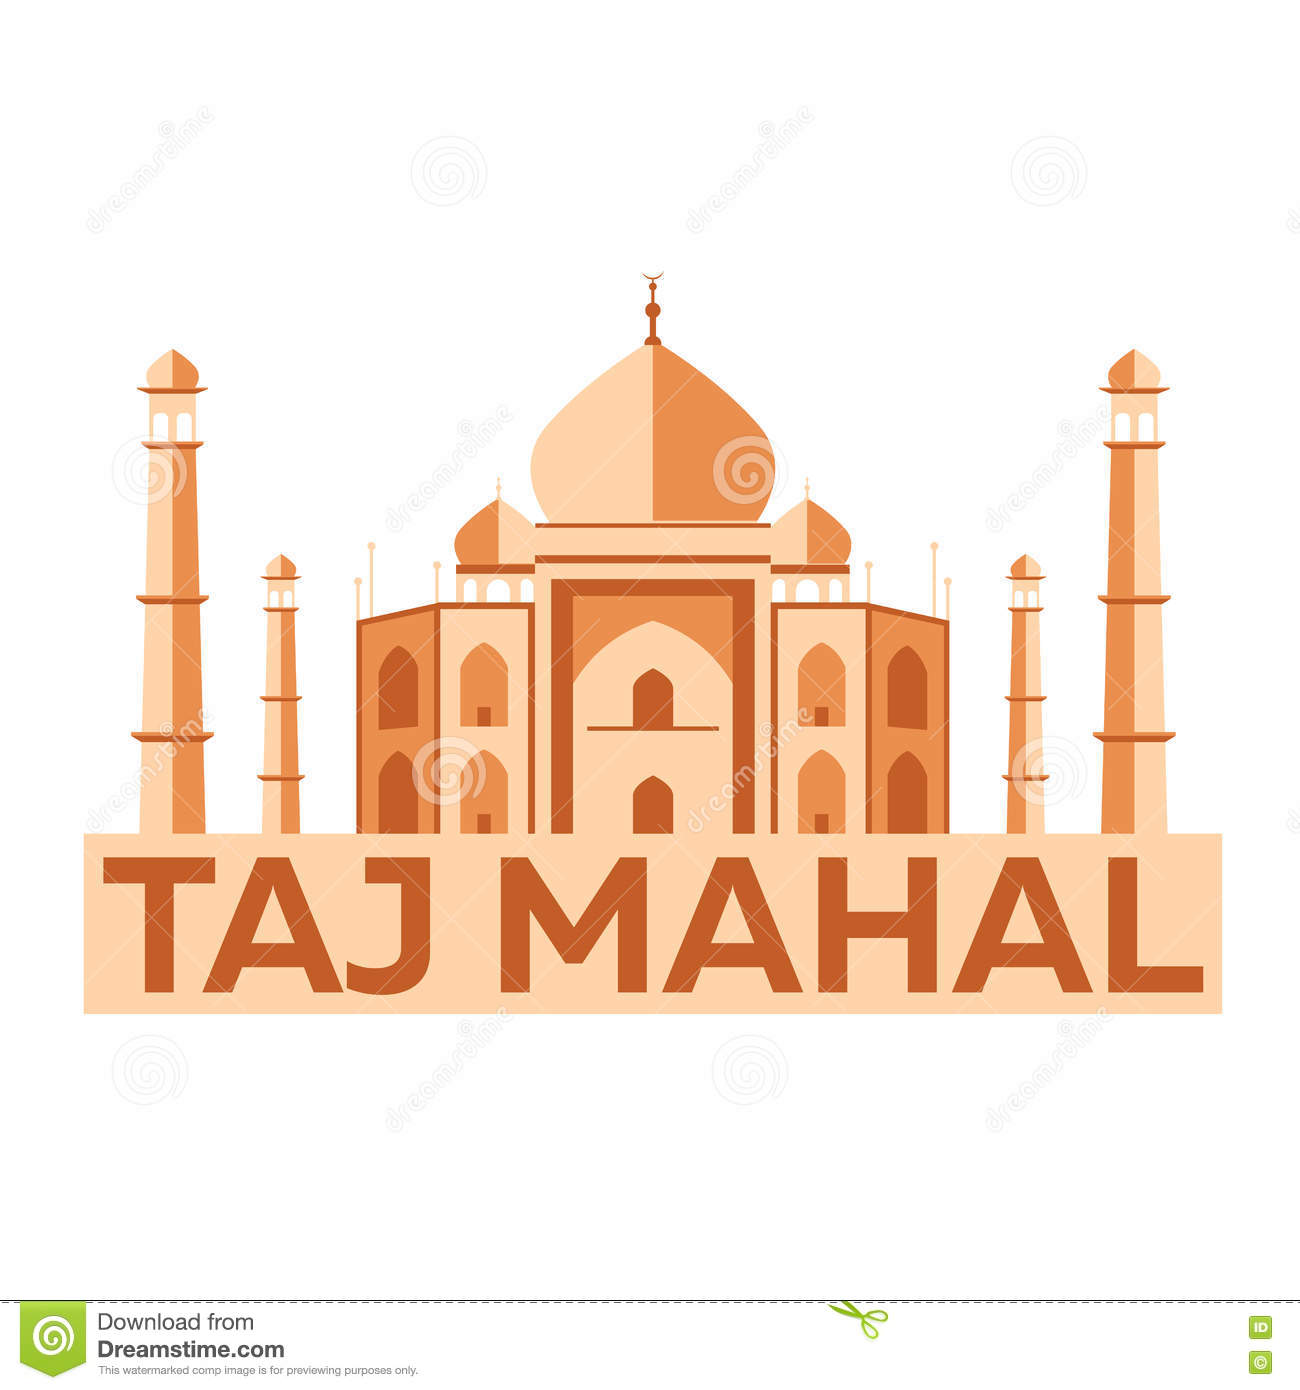 Modern Indian Architecture Google Search: Taj Mahal. Agra. Indian Architecture. Modern Flat Design